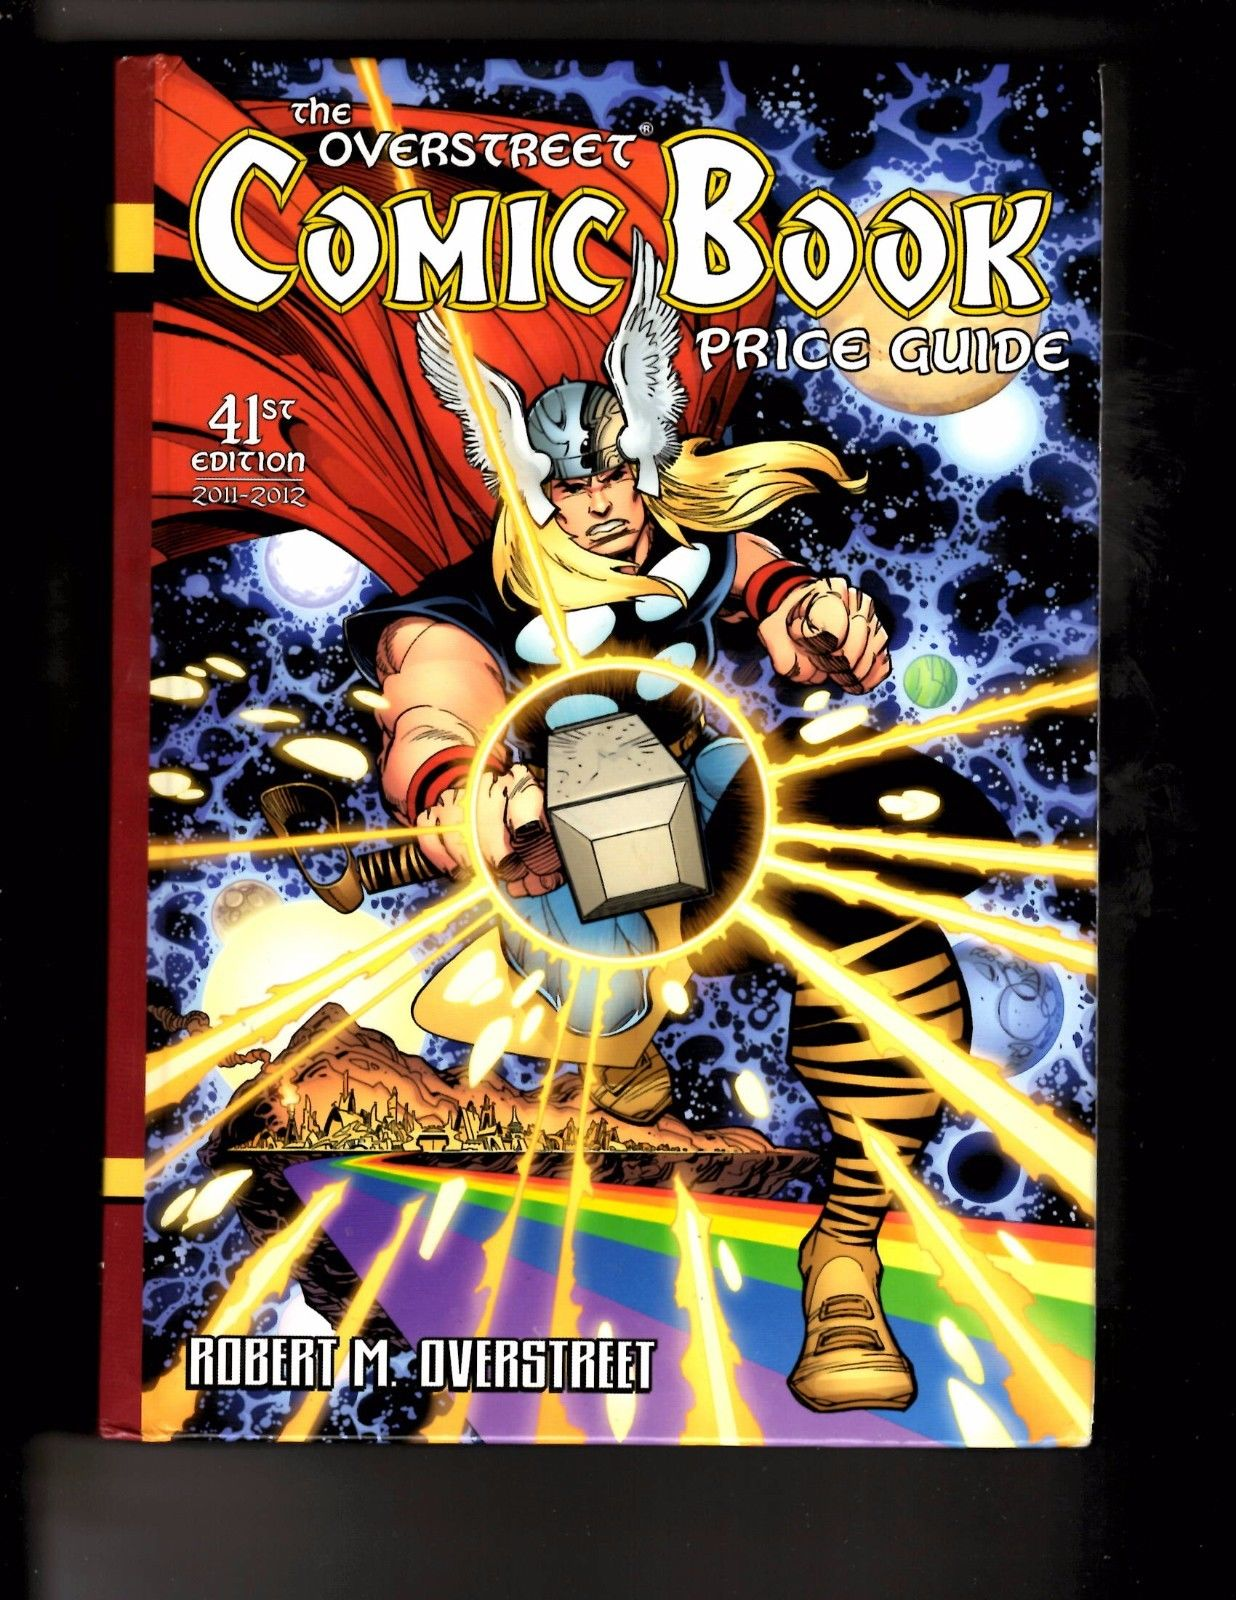 overstreet comic book price guide 41 hardcover nm thor cover 2011 rh hipcomic com Robert M. Overstreet Classic Illustrated Price Guide